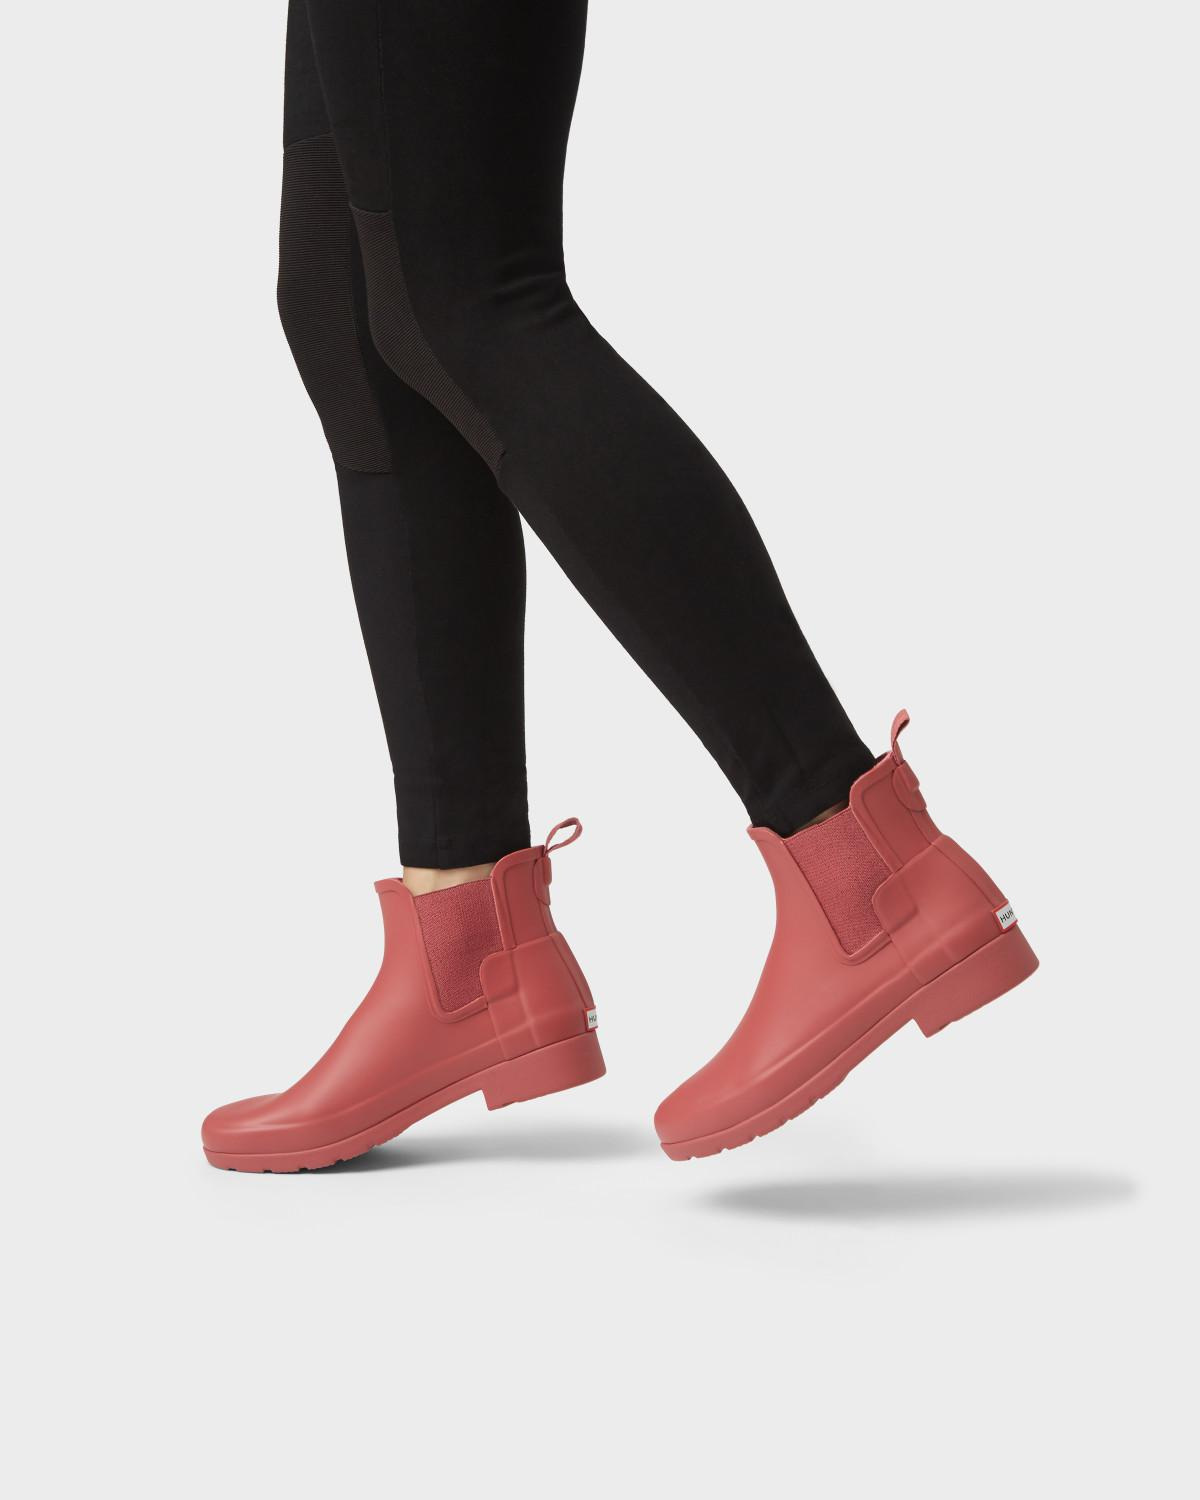 Hunter Rubber Women S Refined Slim Fit Chelsea Boots In Rose Red Lyst From flat to heeled styles and black chelsea boots that go with your entire 'drobe, keep your look current with suede, chunky and studded chelsea. women s refined slim fit chelsea boots